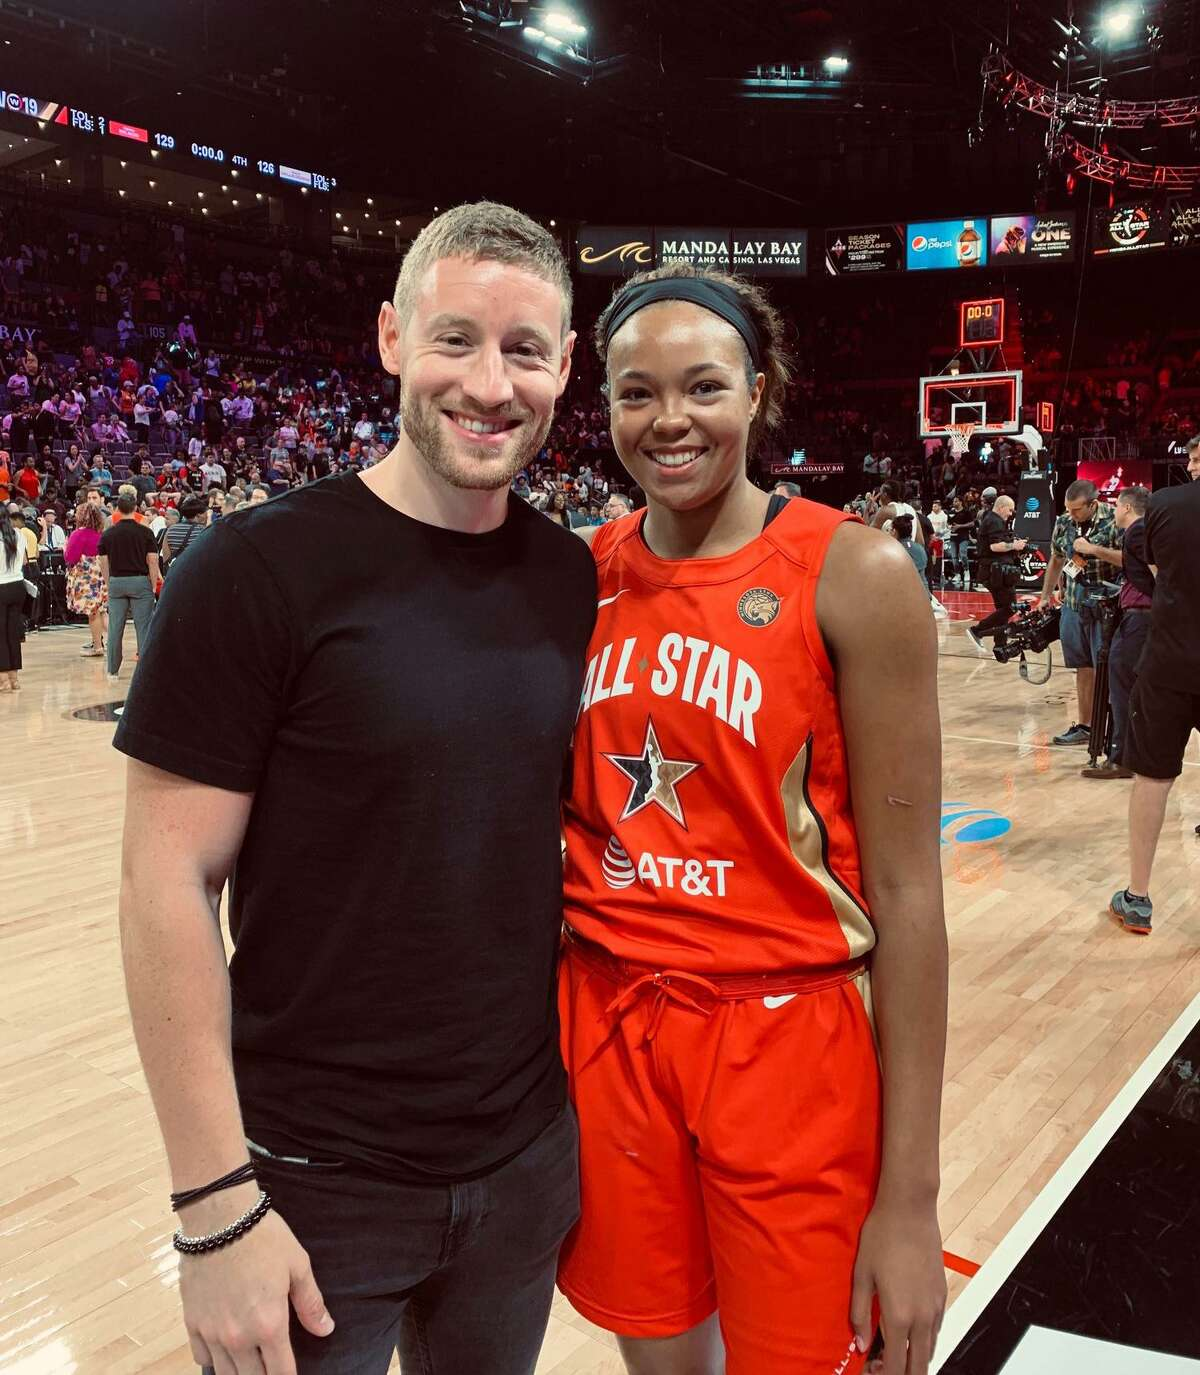 Basketball trainer Alez Bazzell, left, and his fiance, Lynx star Napheesa Collier at the WNBA All-Star game.